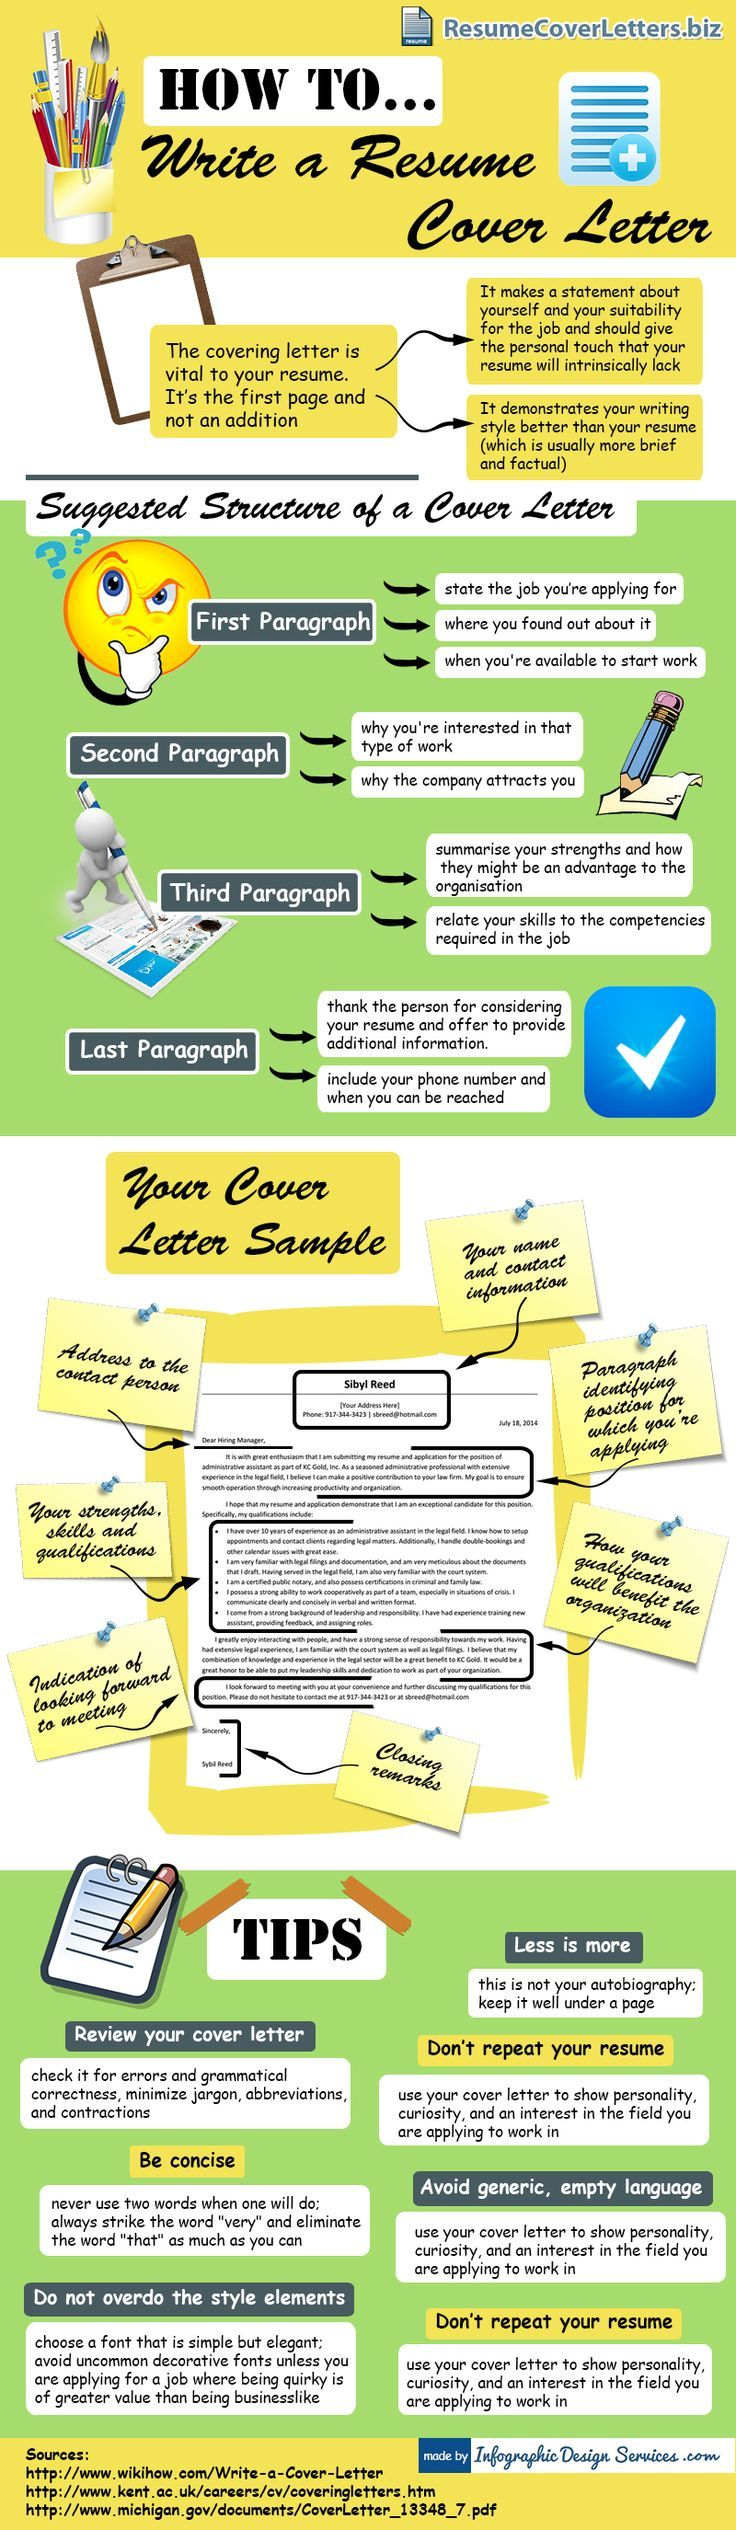 cover letter advice 1000 ideas about cover letter tips on cover 20994 | c352b087e8fe277934eb7293c3e15508